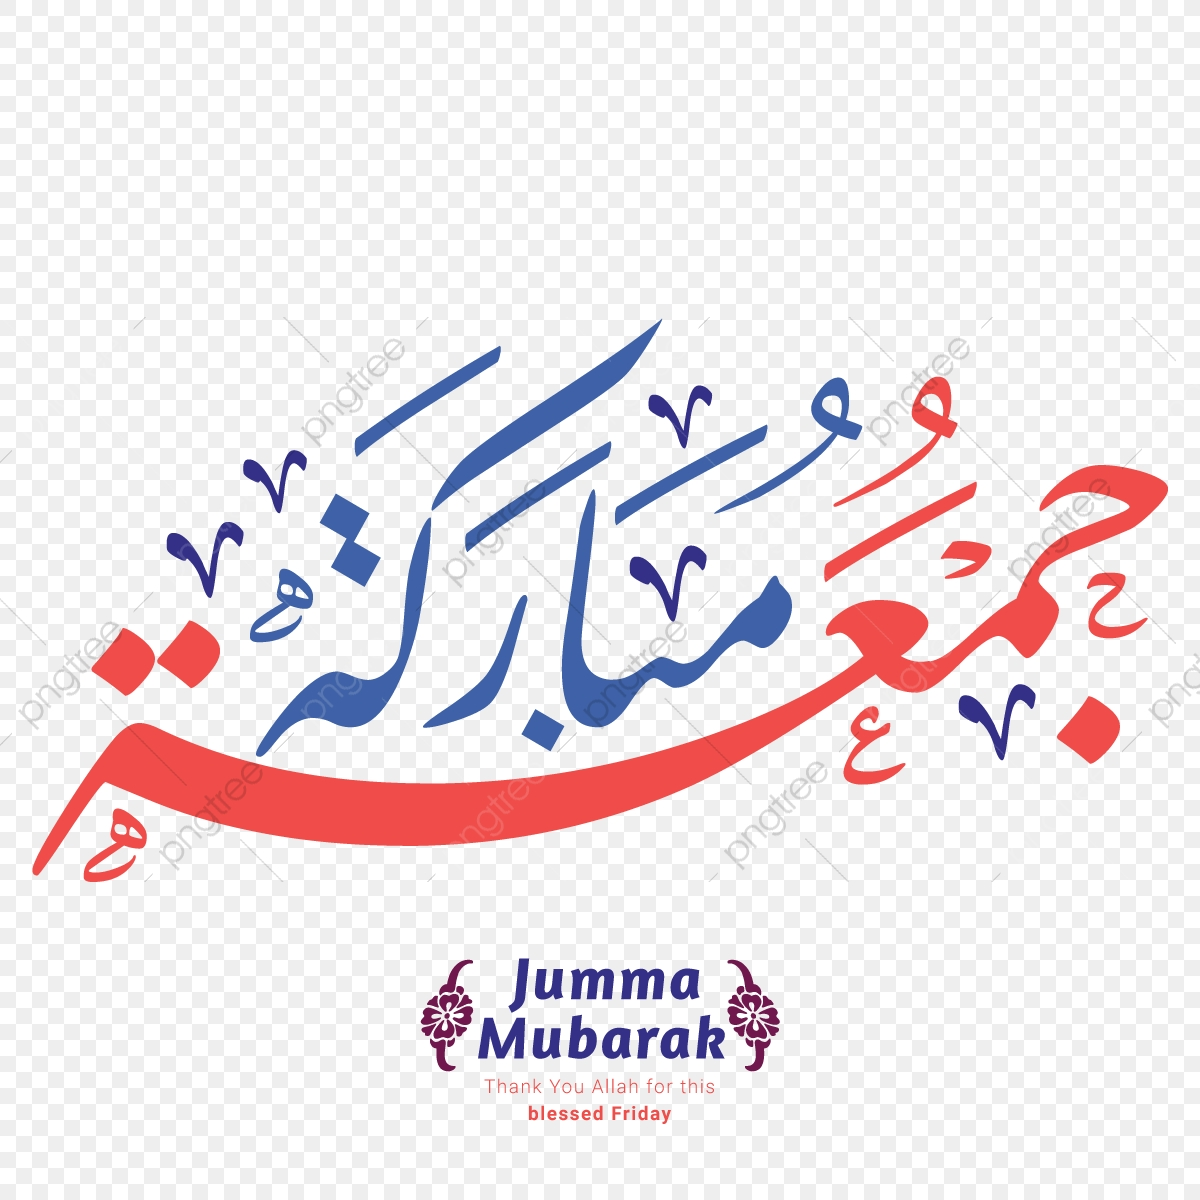 Jumma Mubarak Arabic Calligraphy Translation: Blessed Friday, Arab ...